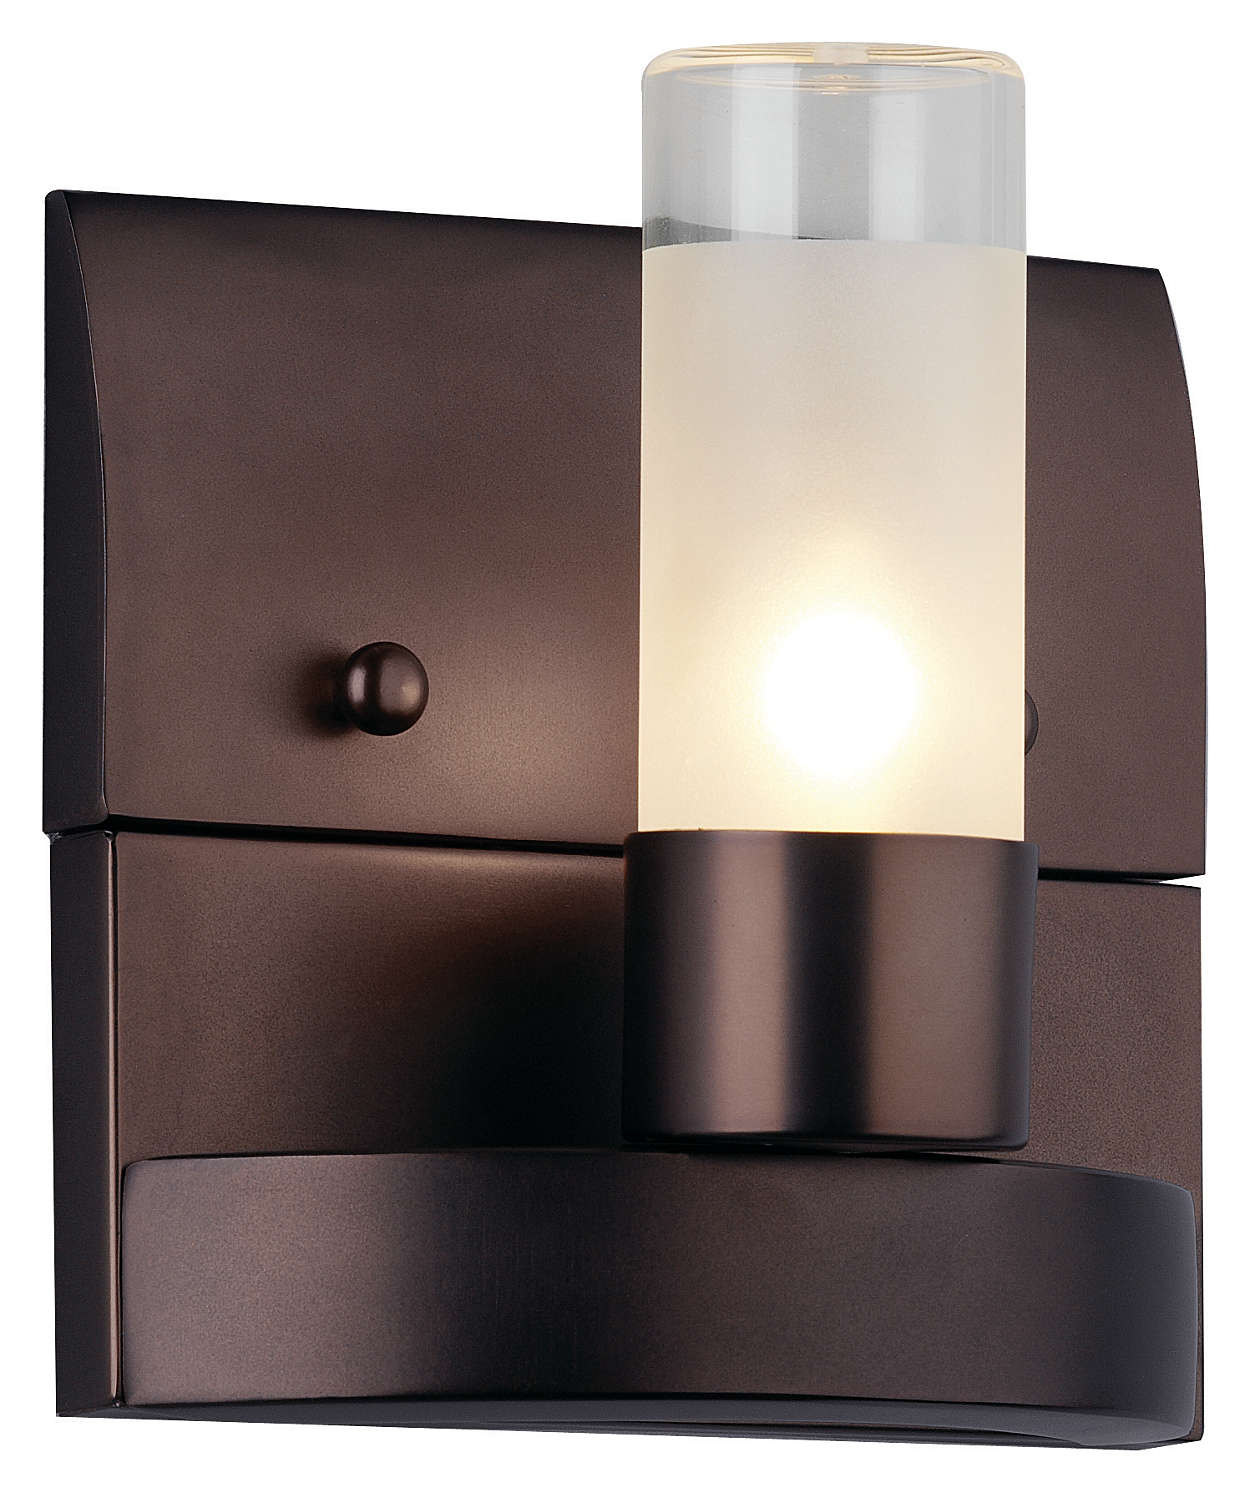 Revolution 1-light Bath in Merlot Bronze finish